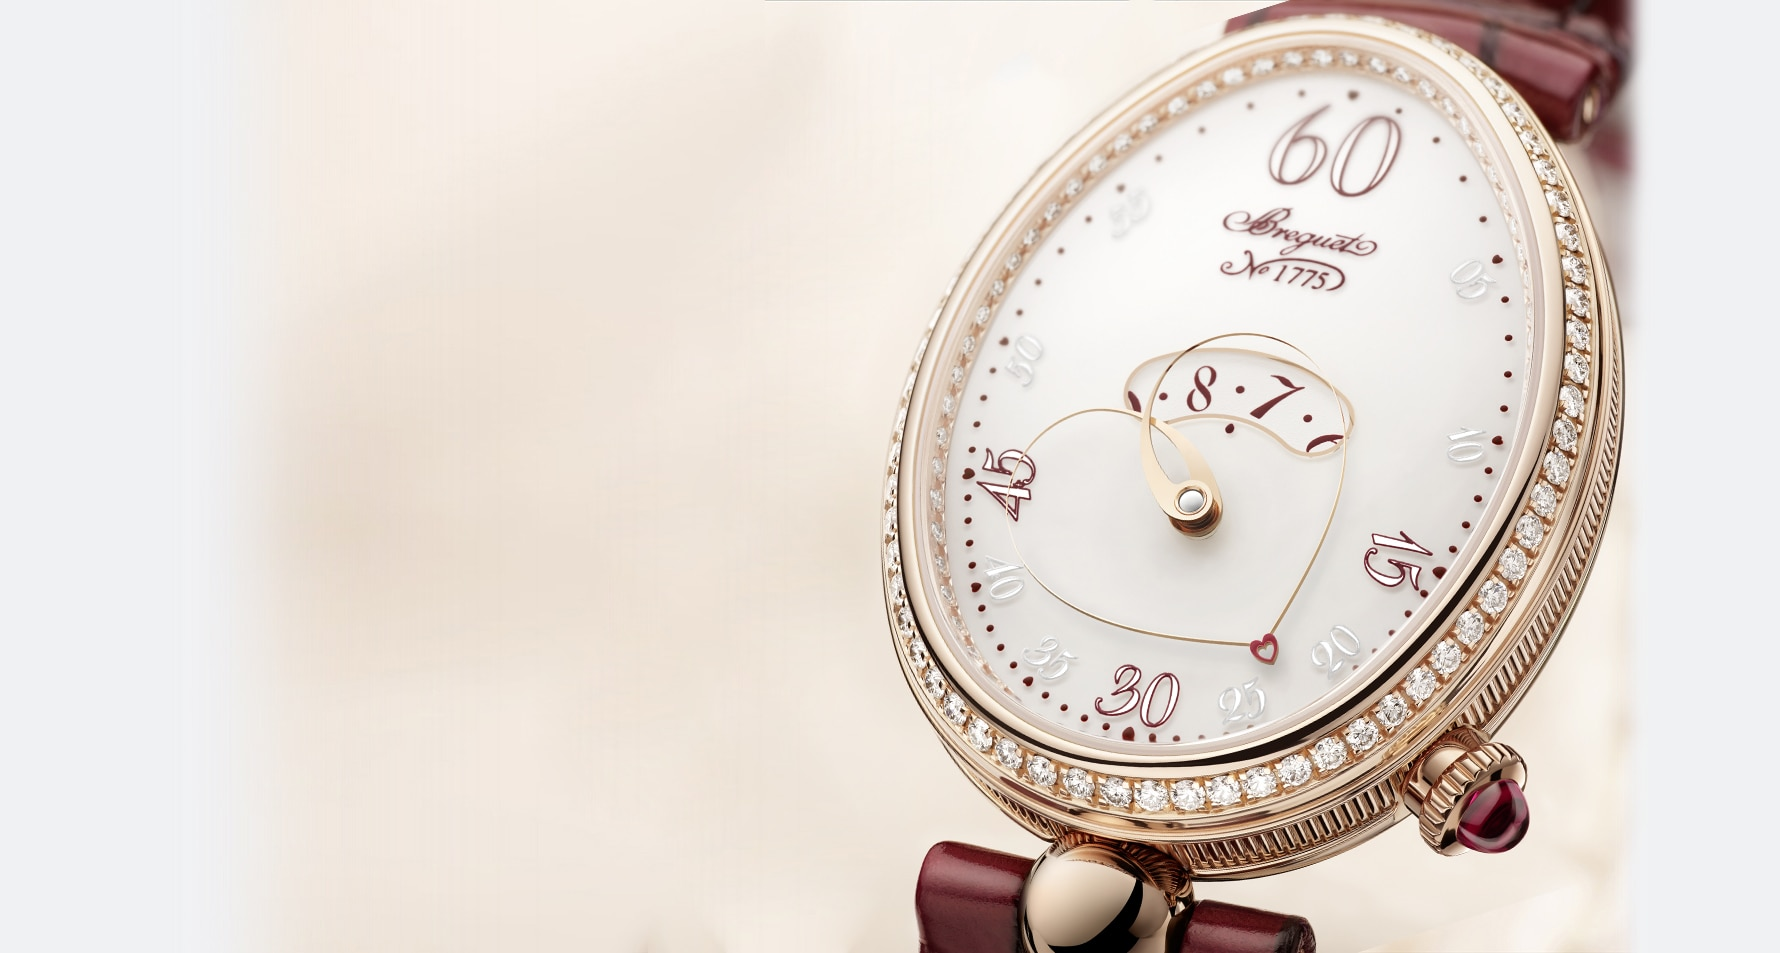 The House of Breguet Welcomes an Original Creation: Reine de Naples Cœur